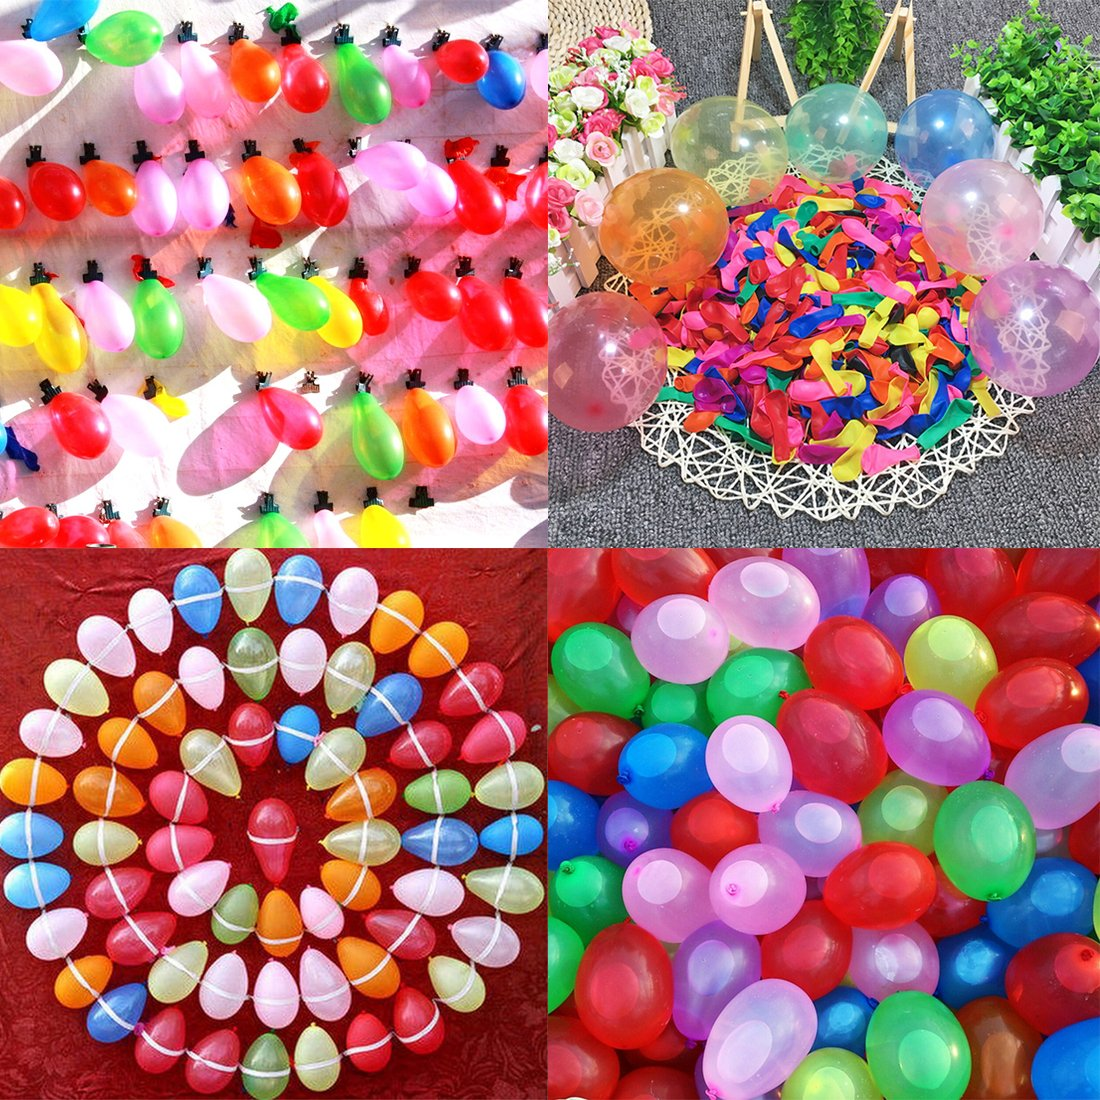 Yamix 3000 Pack Water Balloons Latex Water Bomb Balloons Fight Games for Kids Adults (Funnel Color Random) by Yamix (Image #2)